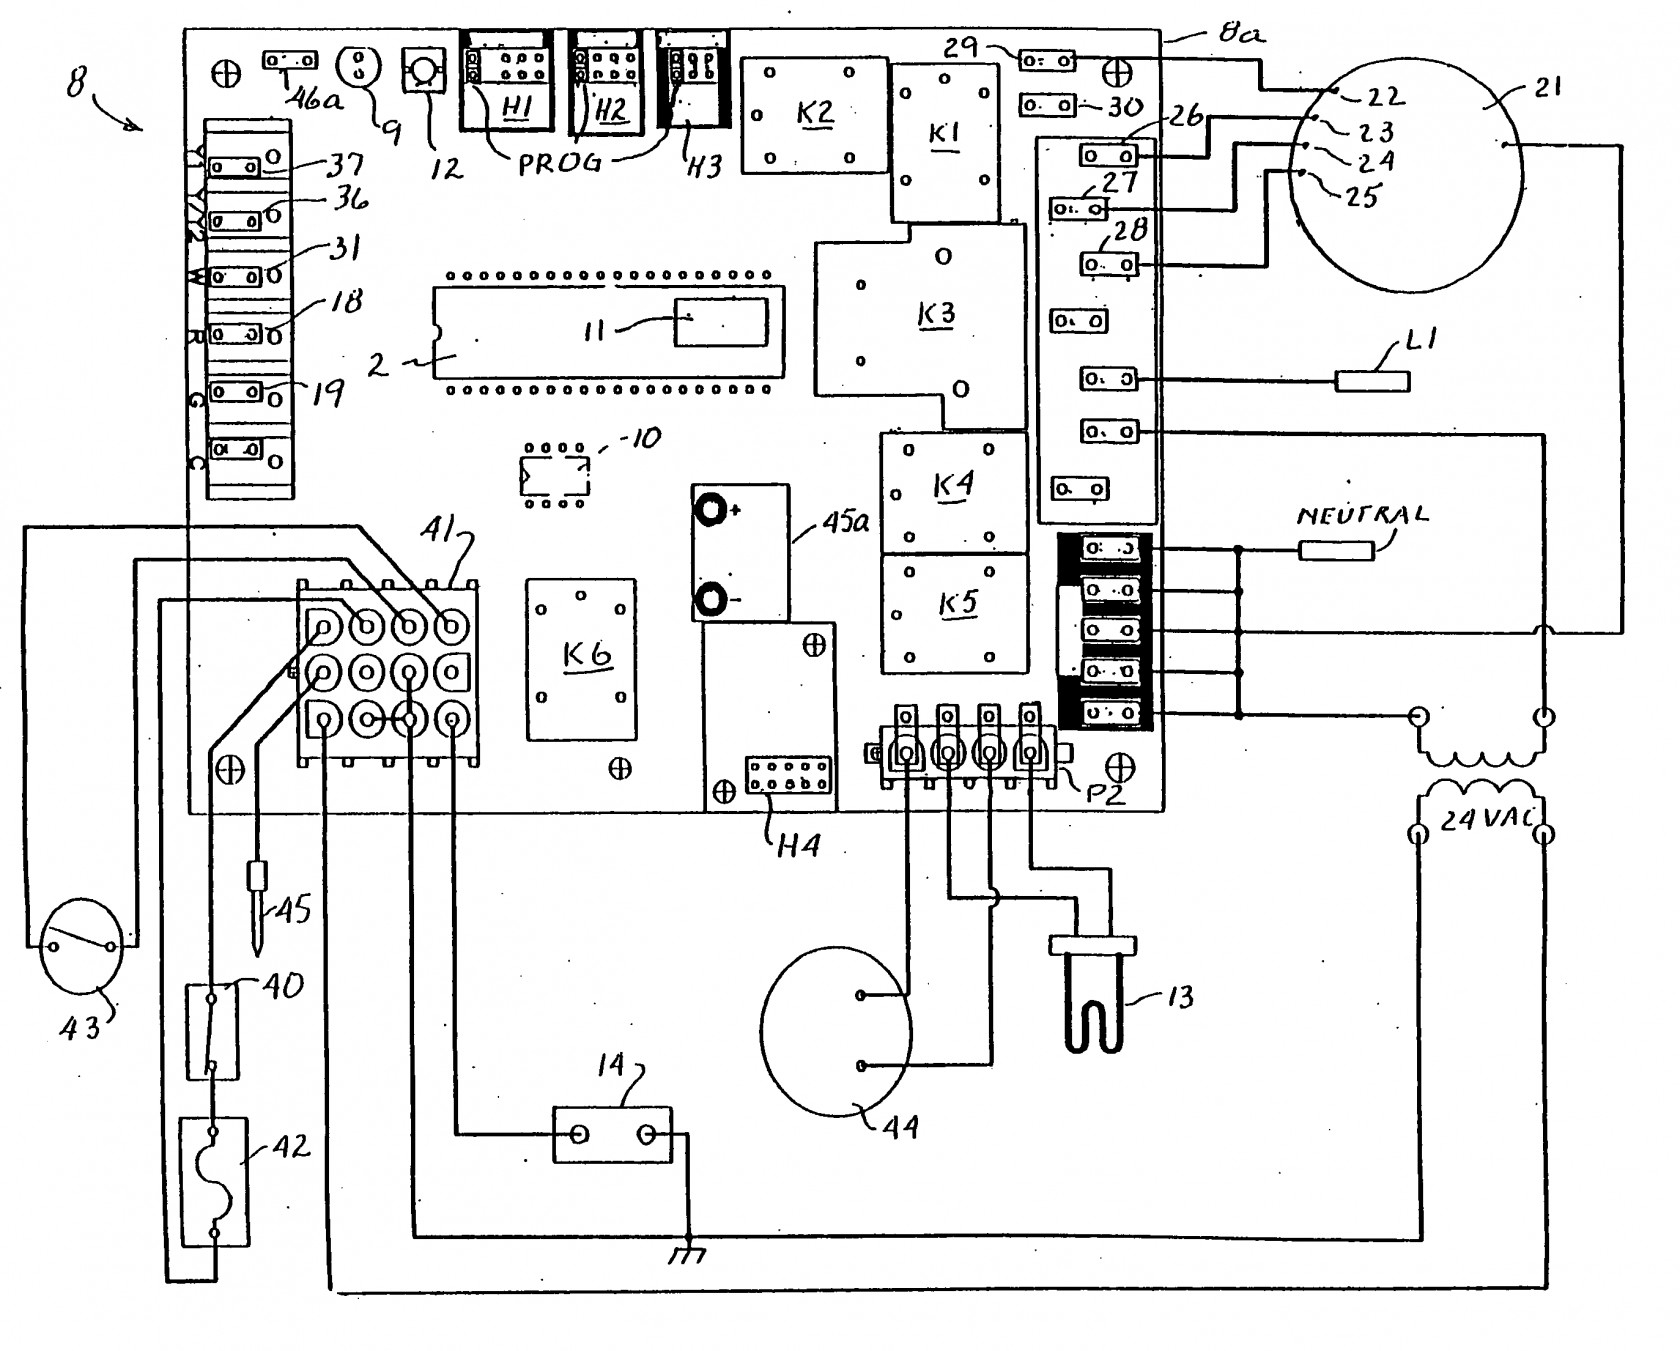 furnace control board wiring diagram Collection-Wiring Diagram for Goodman Gas Furnace New Goodman Furnace Control Board Wiring Diagram Best Hvacl Wiring 6-i